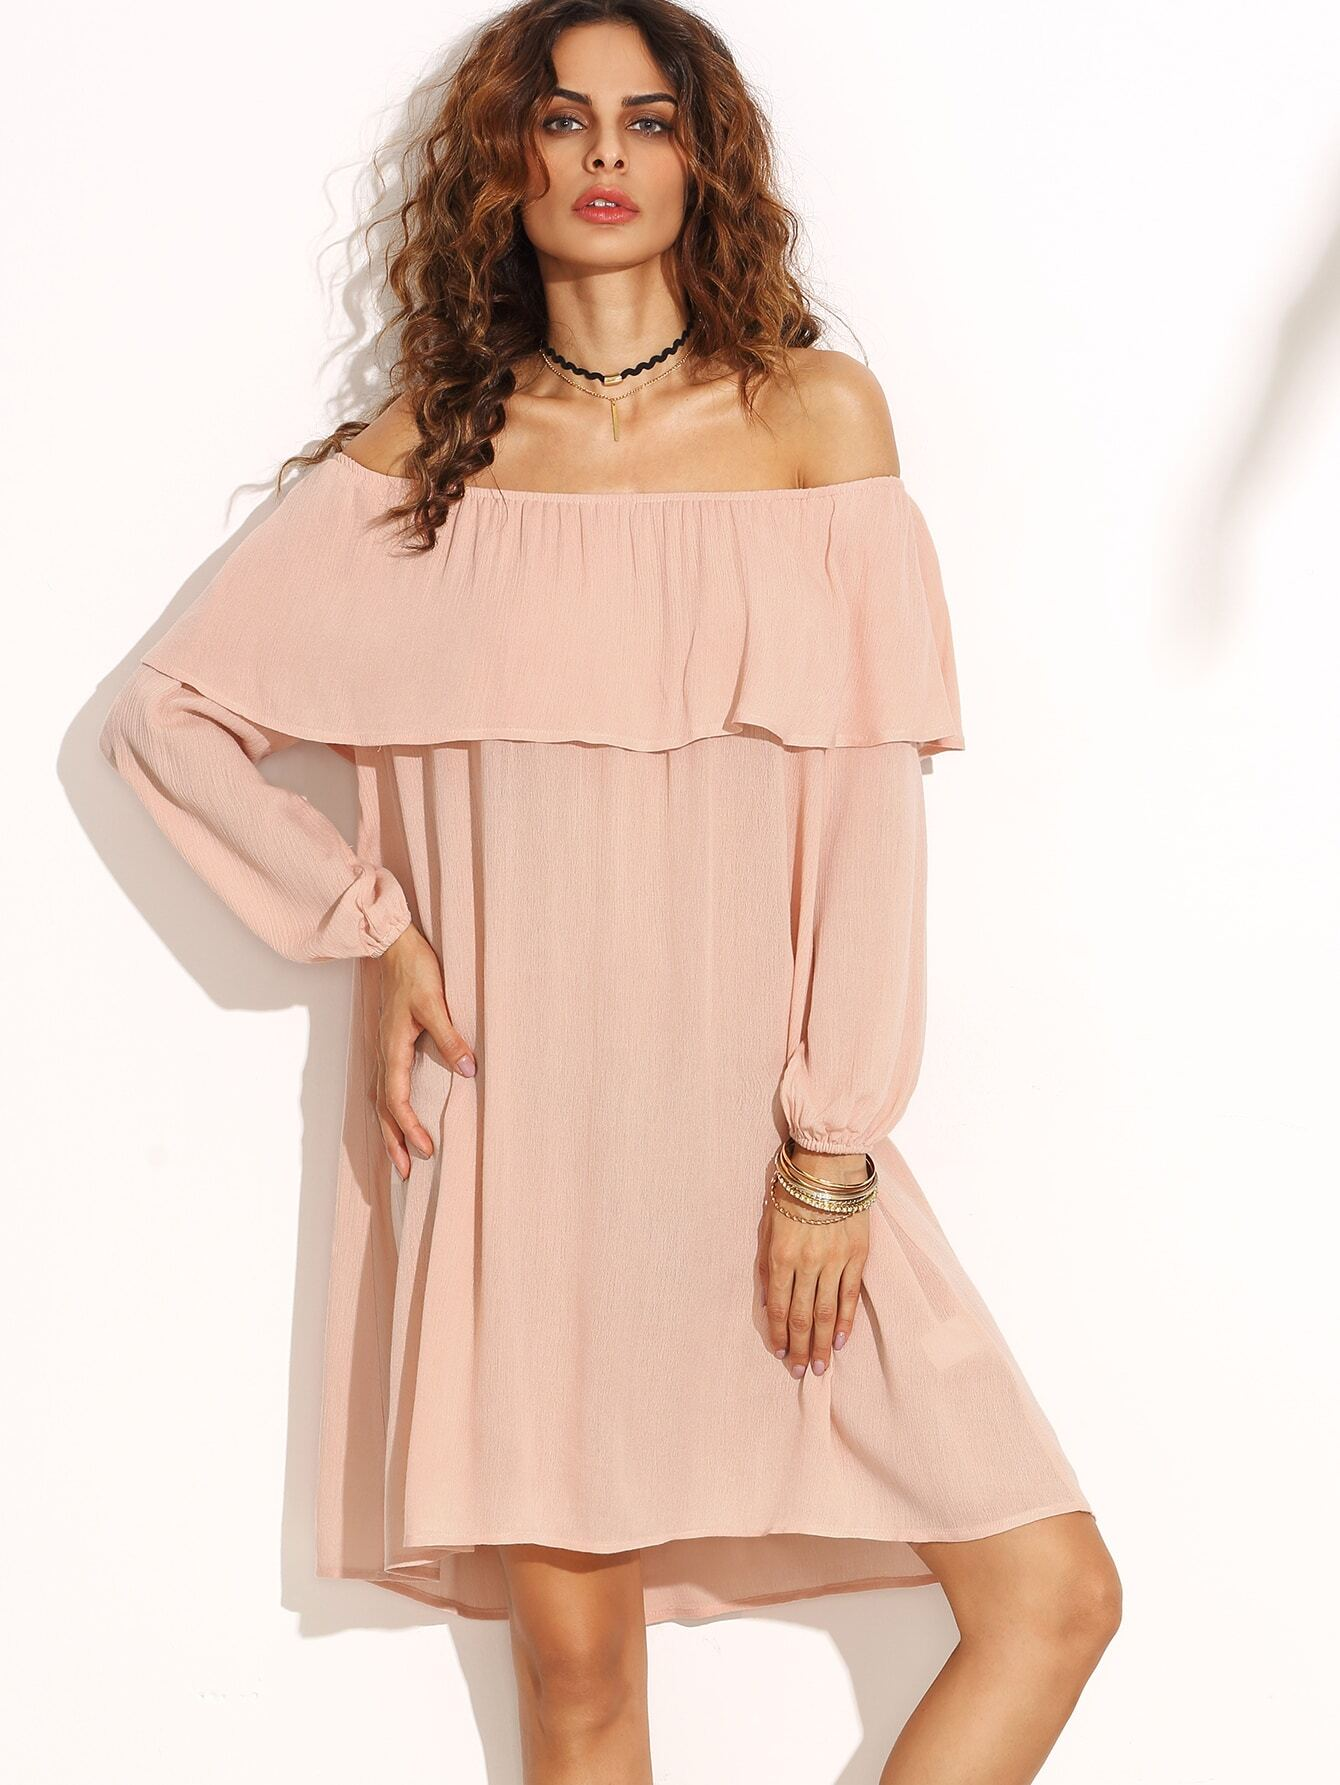 55f05d68f5 Pink Ruffle Off The Shoulder Swing Dress EmmaCloth-Women Fast ...